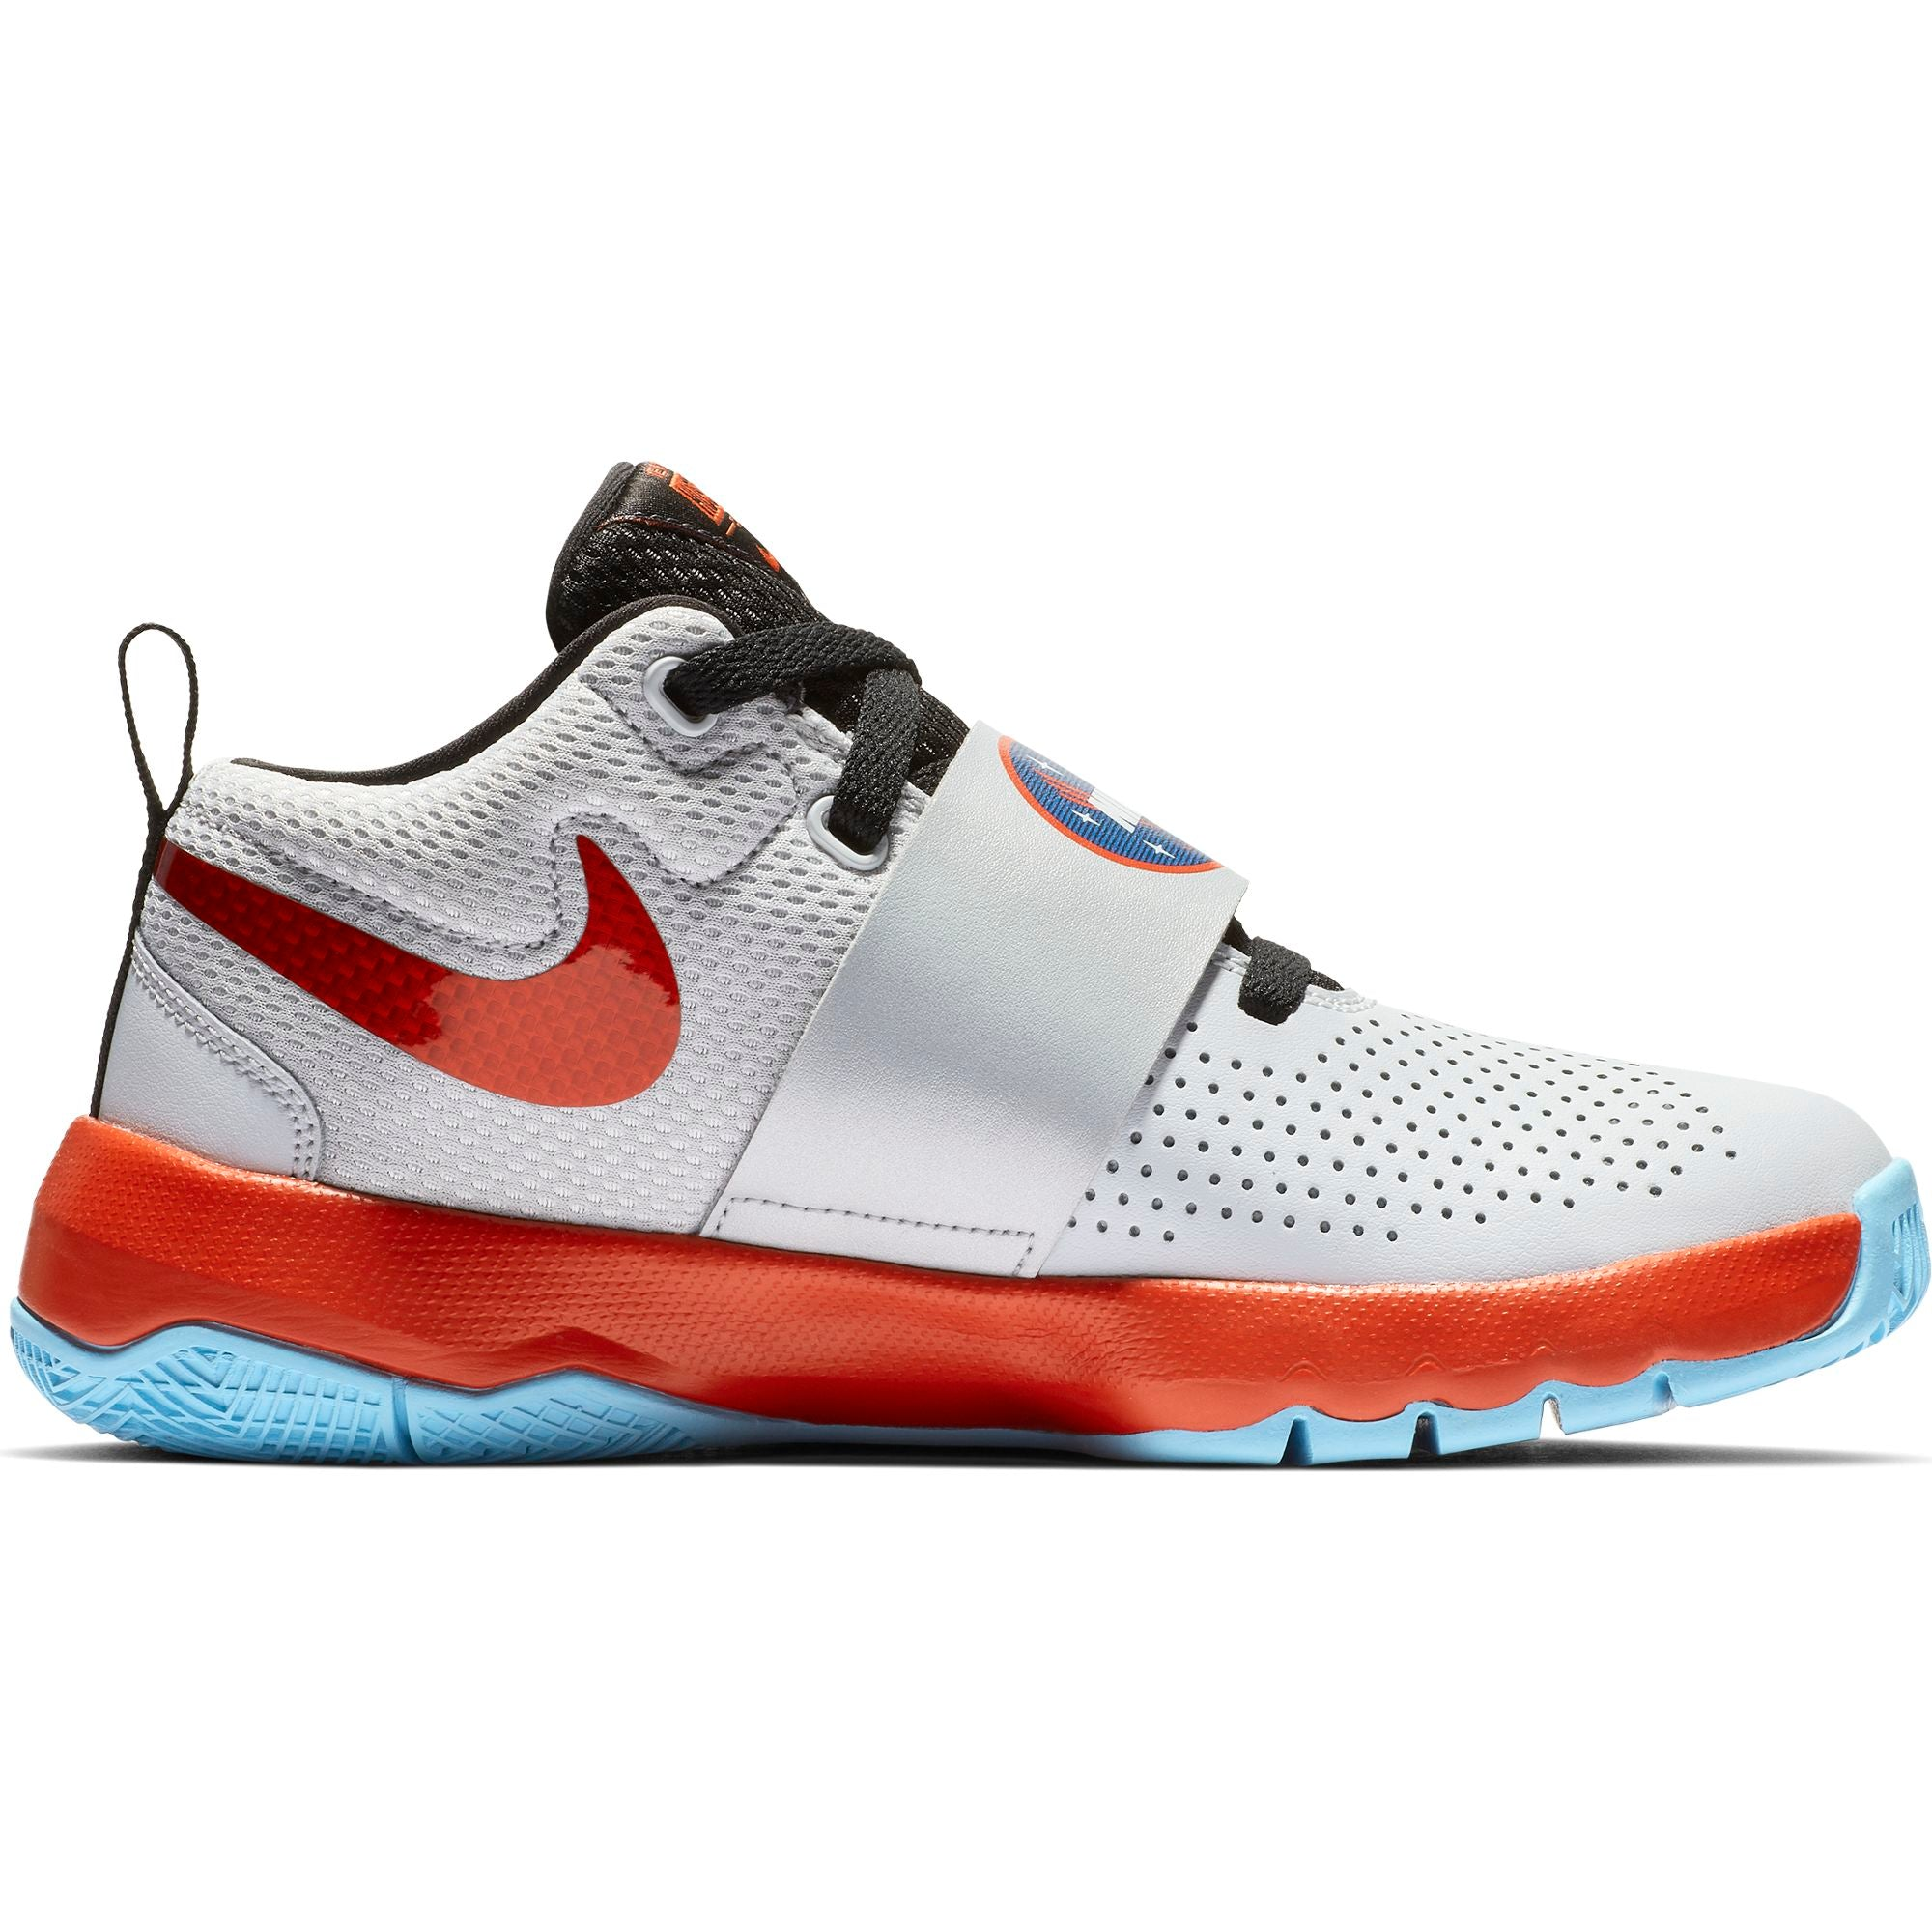 Nike Kids Team Hustle D 8 SD Basketball Boot/Shoe - Pure Platinum/Team Orange/Black